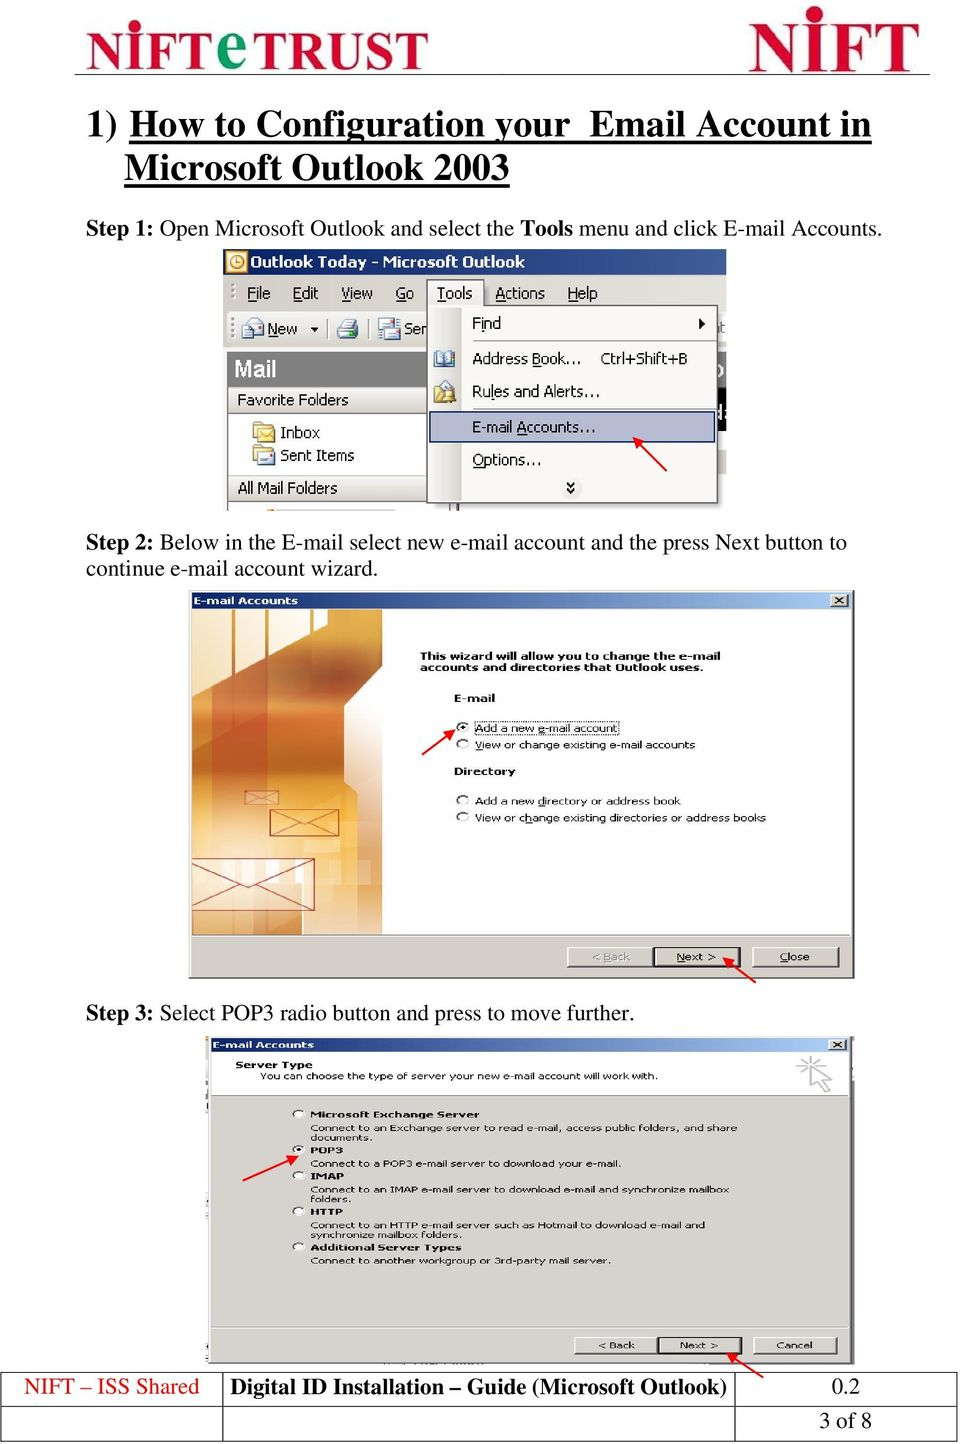 Step 2: Below in the E-mail select new e-mail account and the press Next button to